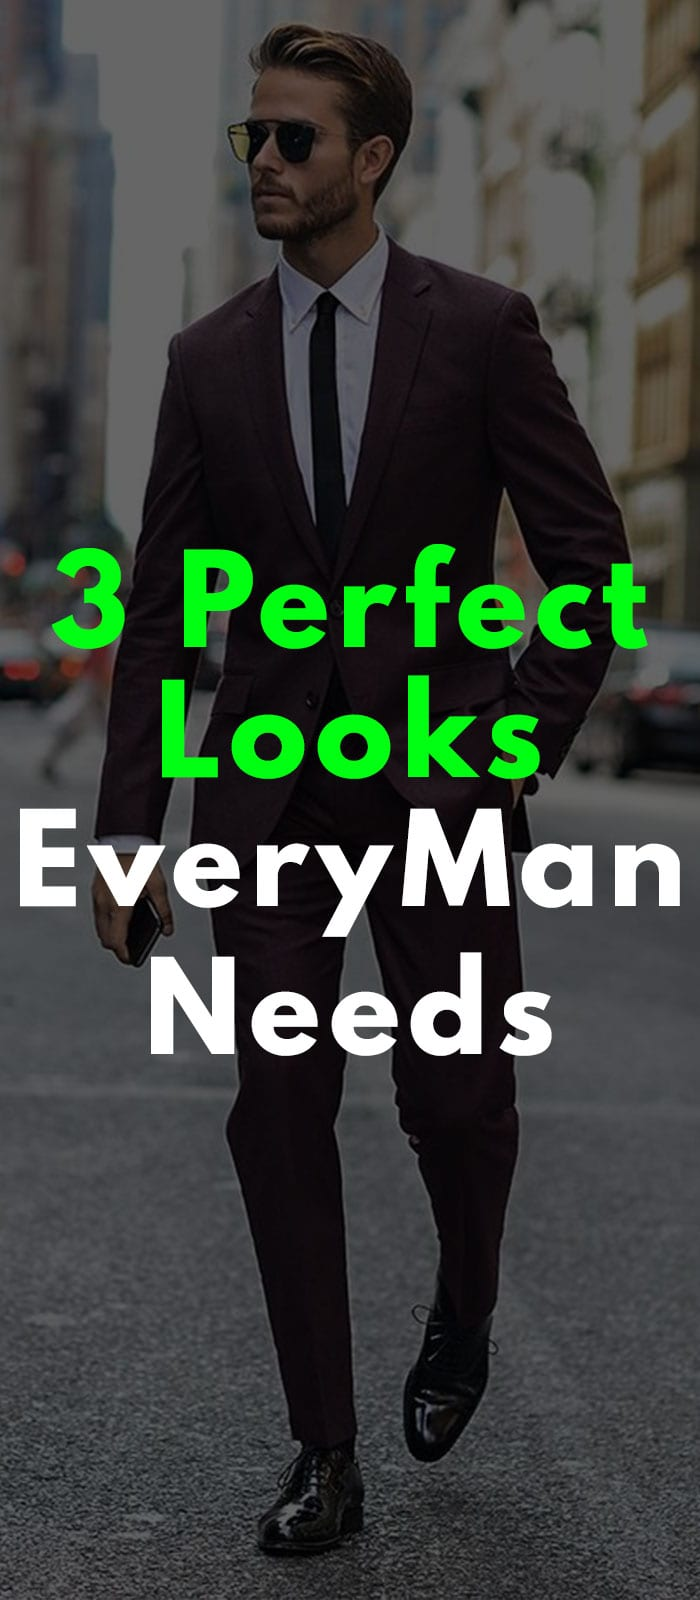 3 Perfect Looks Every Man Needs